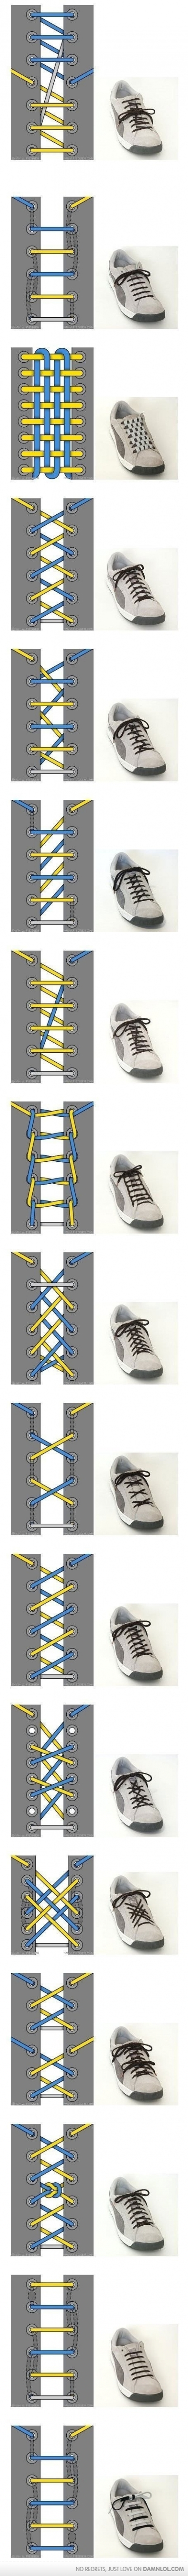 36 Cool Ways To Tie Your Shoe Laces